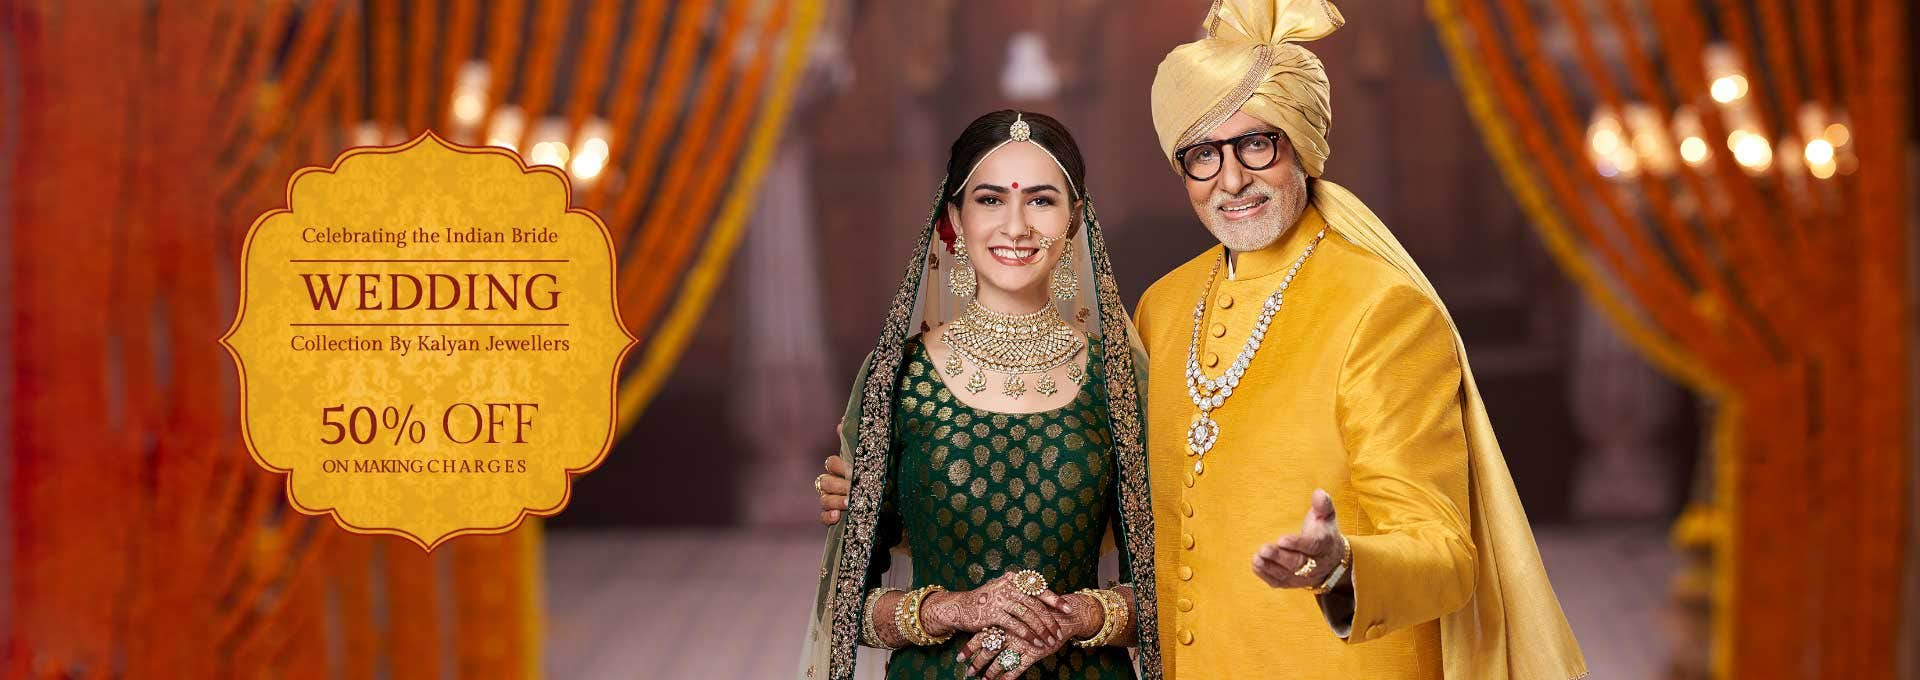 Wedding Collection by Kalyan Jewellers